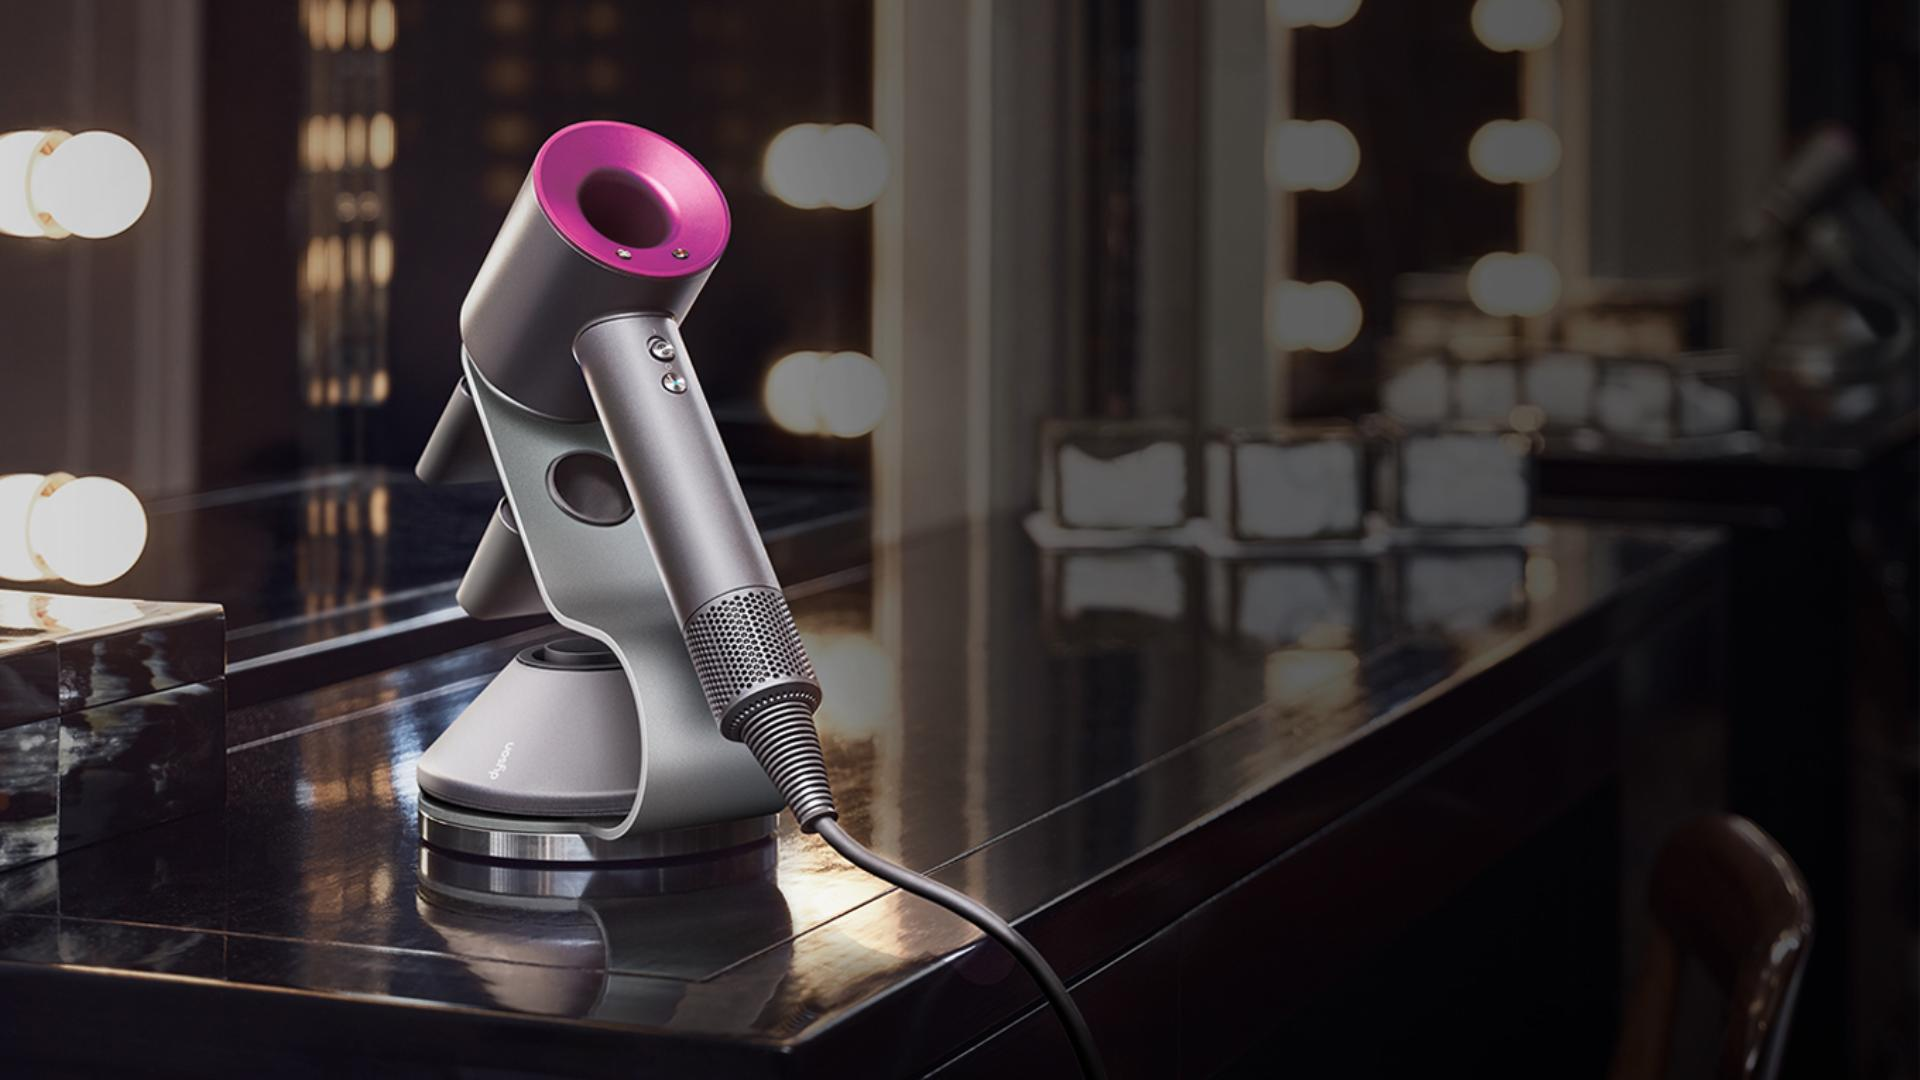 Dyson Supersonic hair dryer on a desk in a hotel room